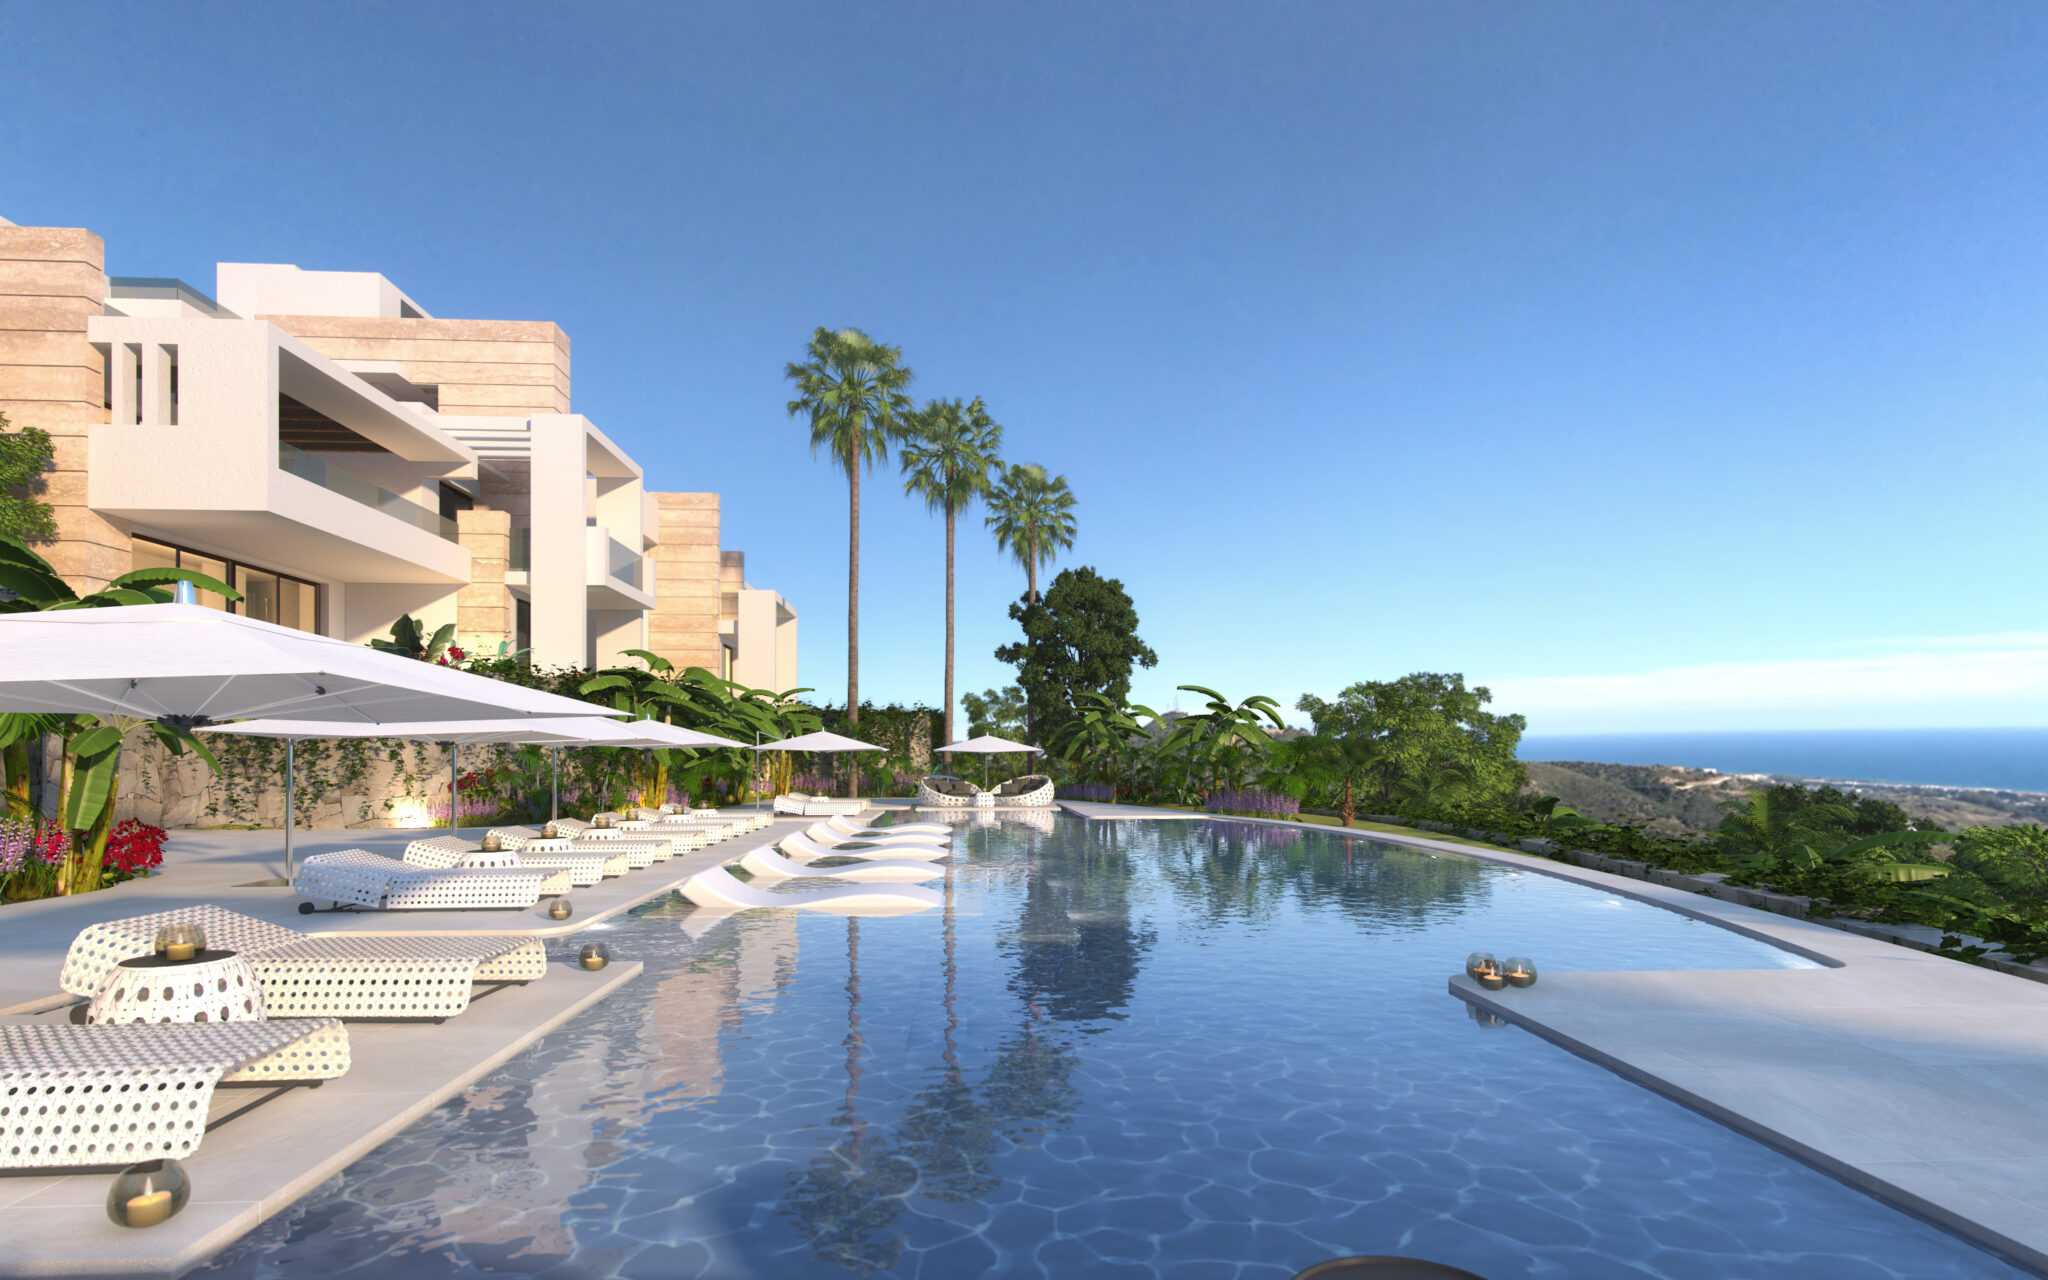 Luxury new seaviews development, hilltop of Marbella – 2, 3 bed apartments and Penthouses